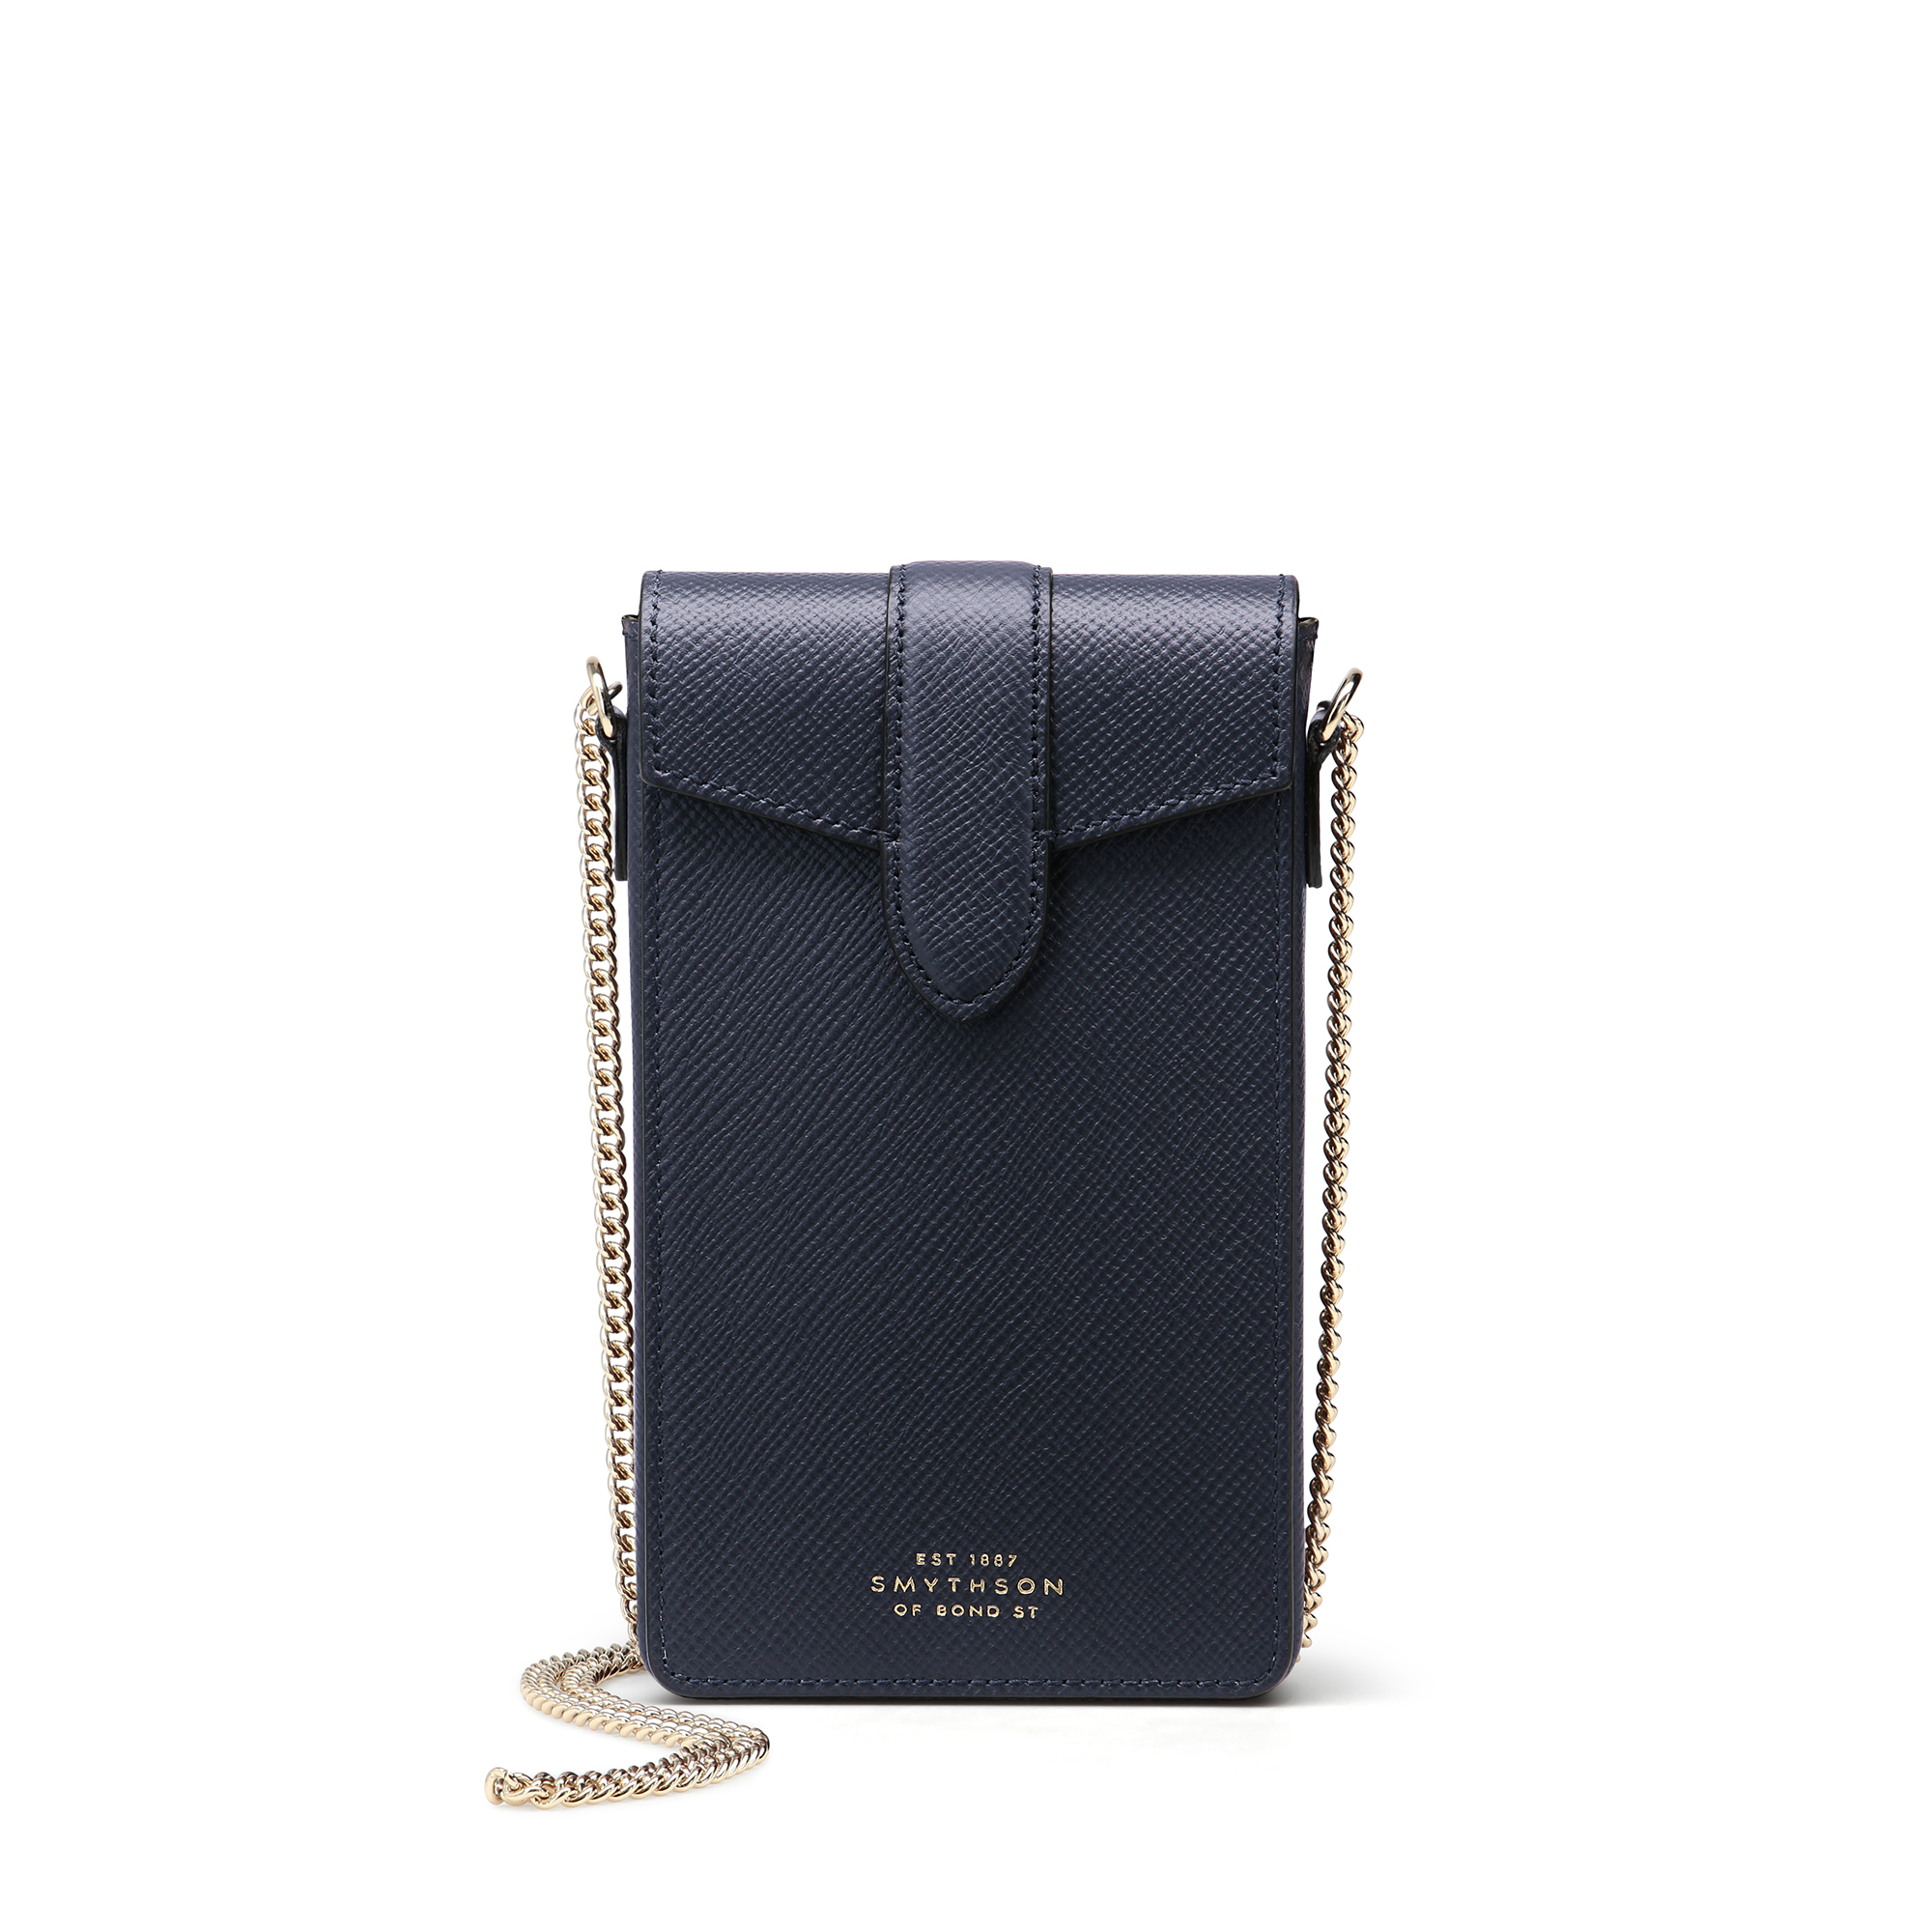 Smythson Panama Phone Case On Chain In Navy